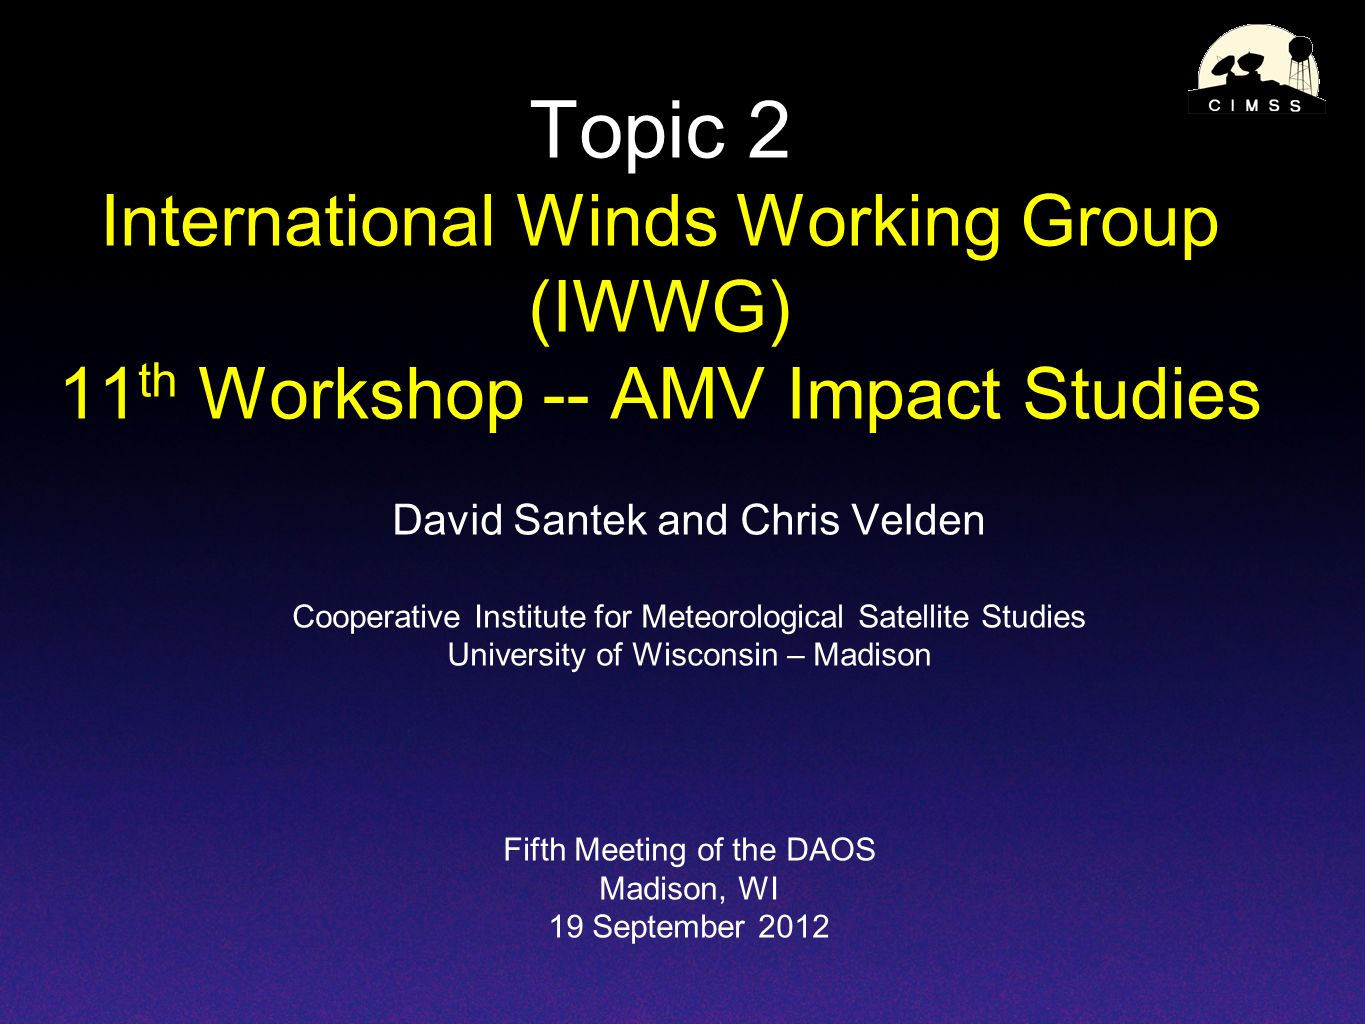 Topic 2 International Winds Working Group (IWWG) 11 th Workshop -- AMV Impact Studies David Santek and Chris Velden Cooperative Institute for Meteorological Satellite Studies University of Wisconsin – Madison Fifth Meeting of the DAOS Madison, WI 19 September 2012